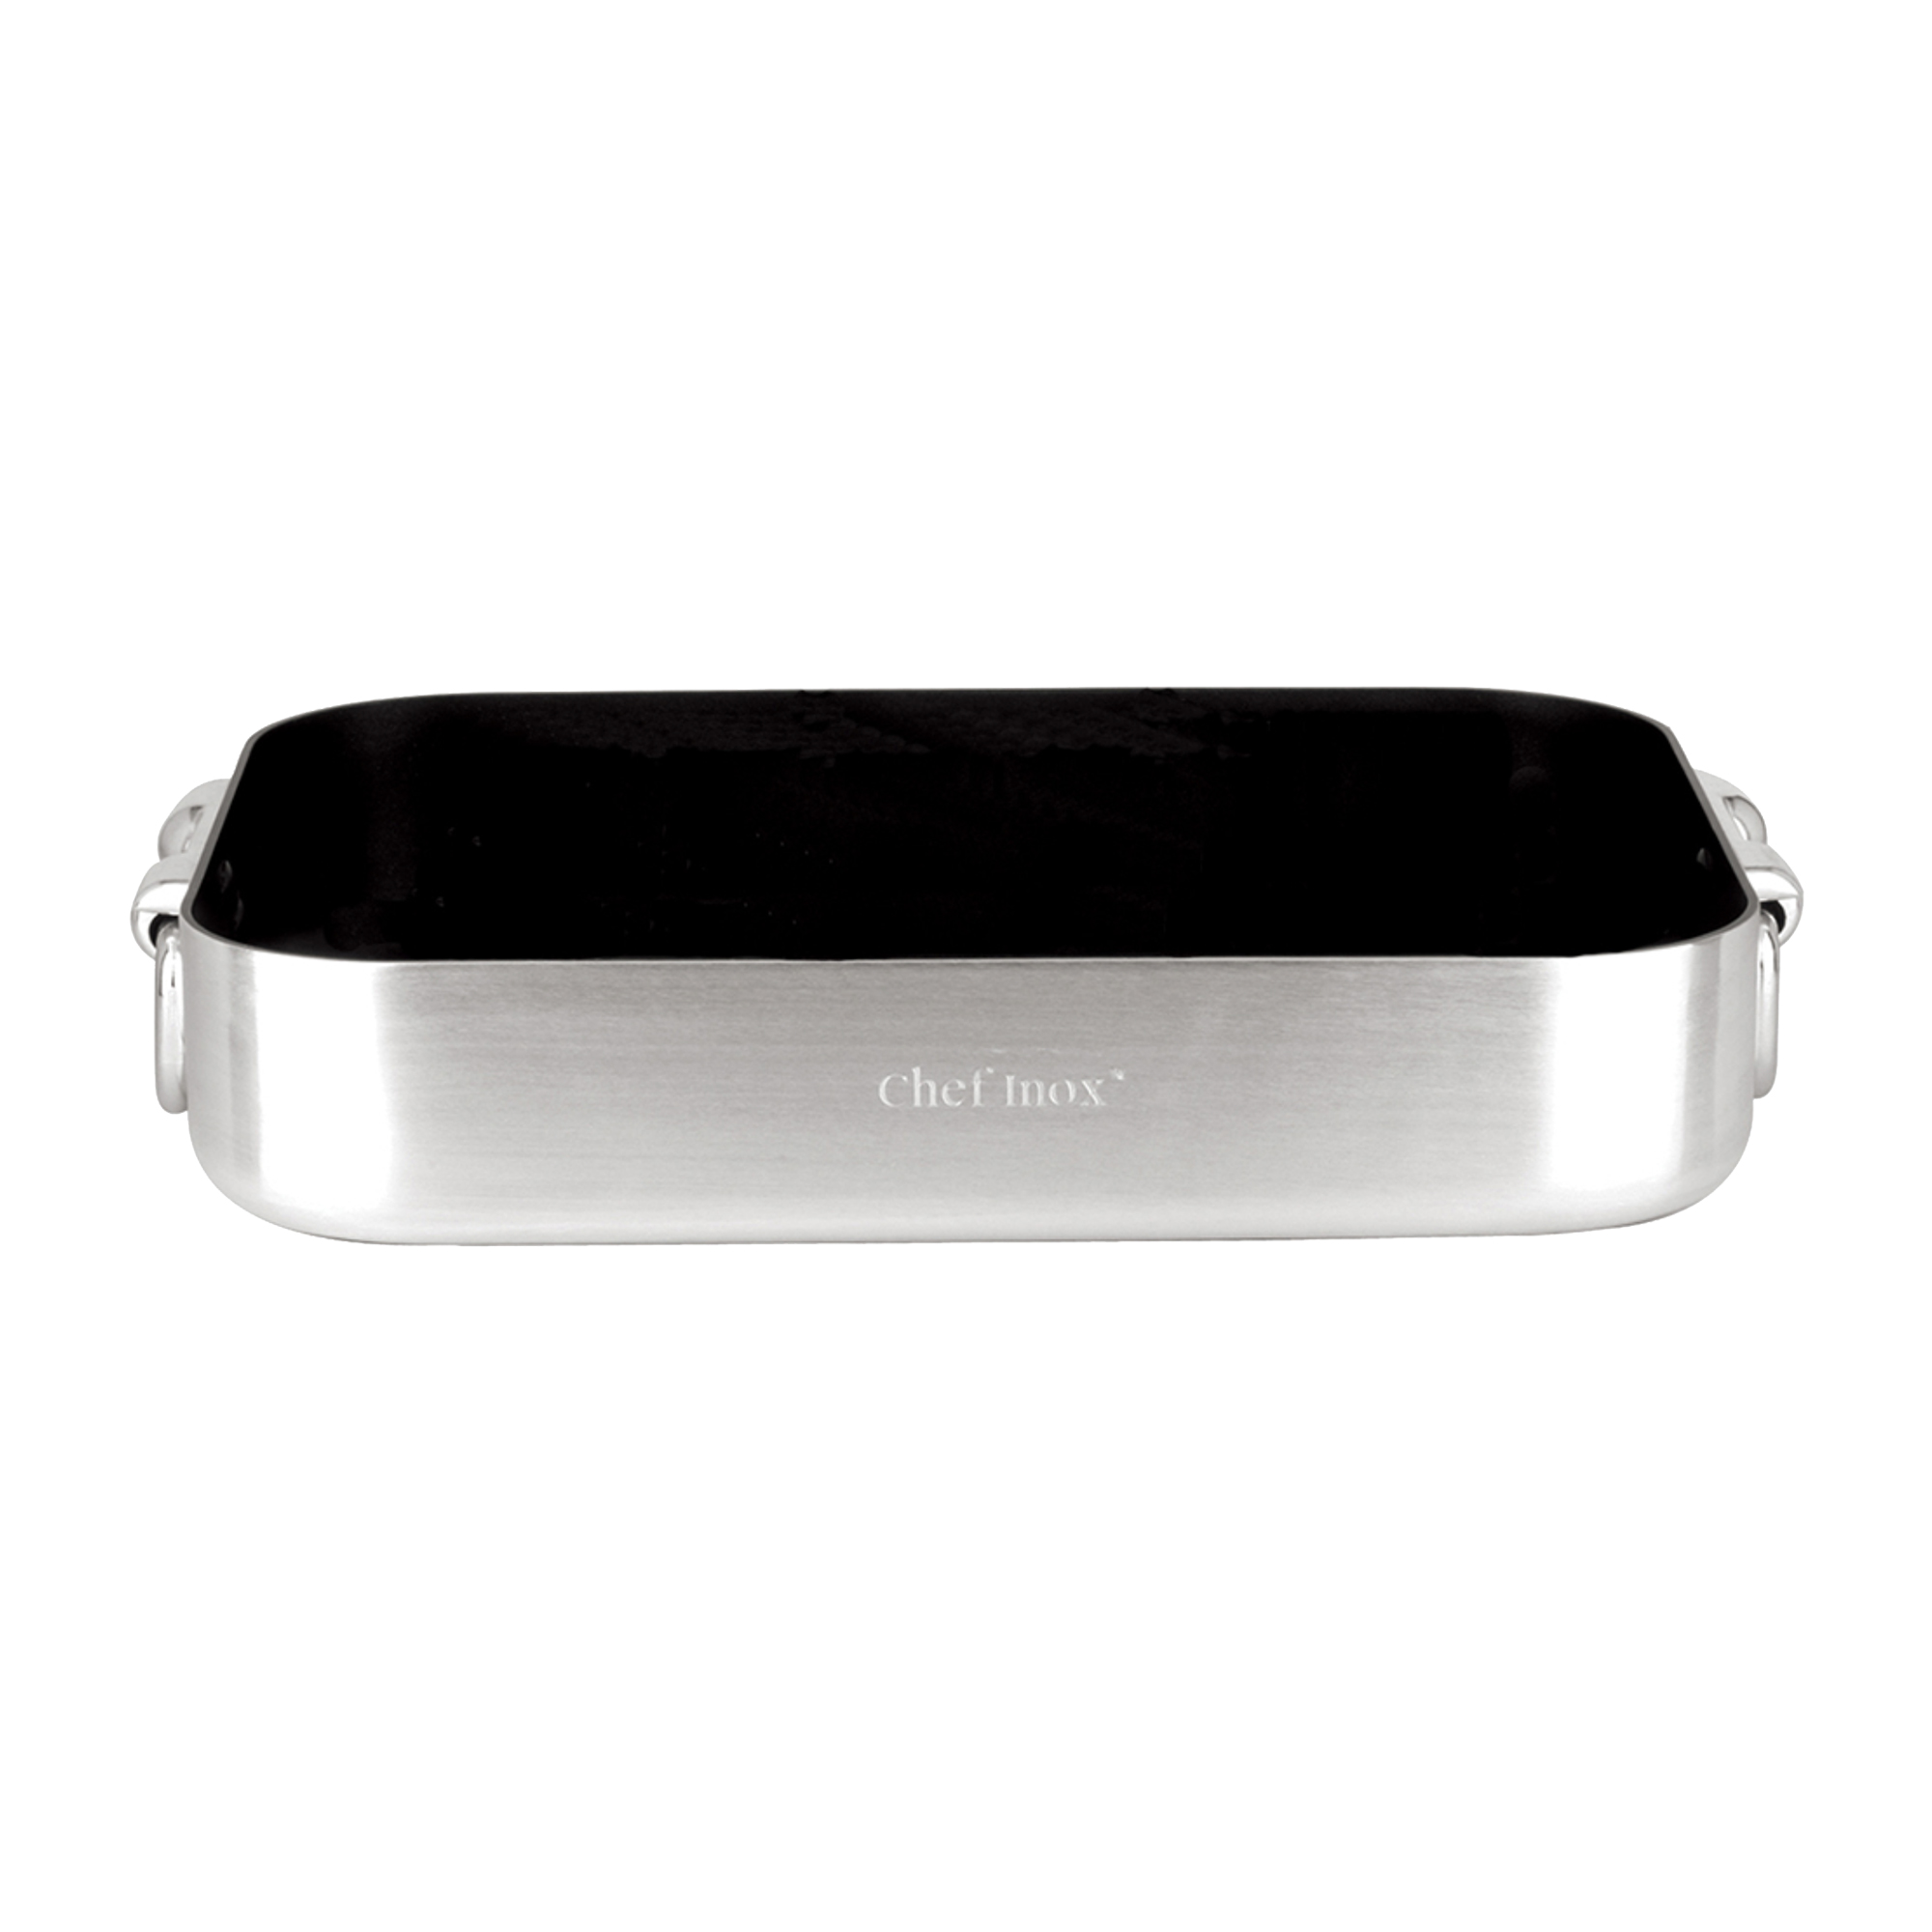 Chef Inox Non Stick Roasting Pan with Drop Handle 40x30cm